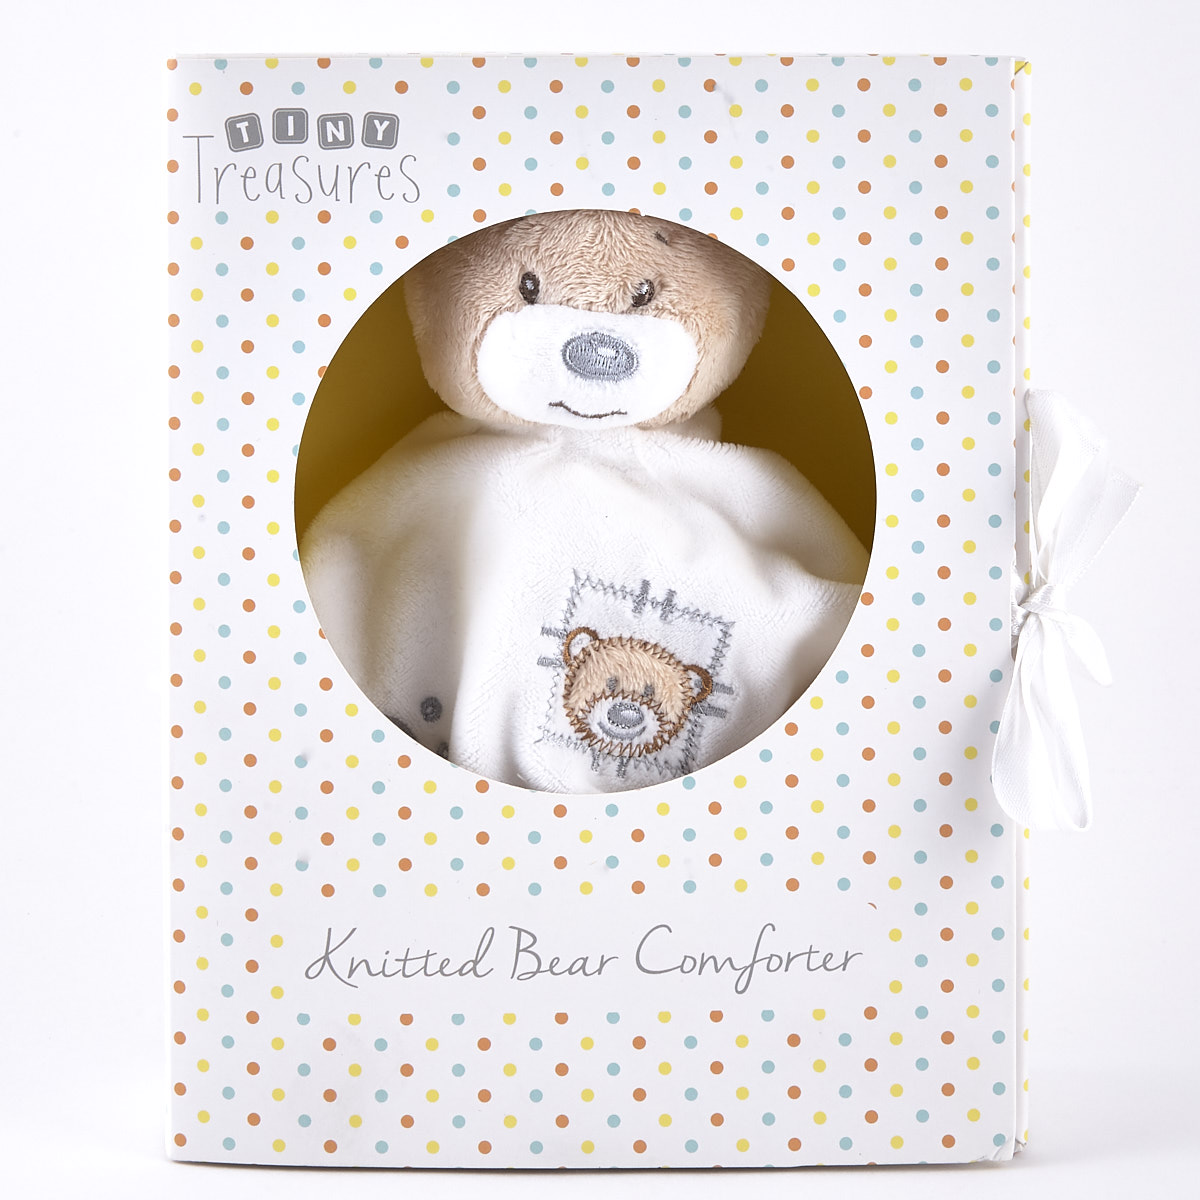 Tiny Treasures Plush Baby Comforter in Gift Box